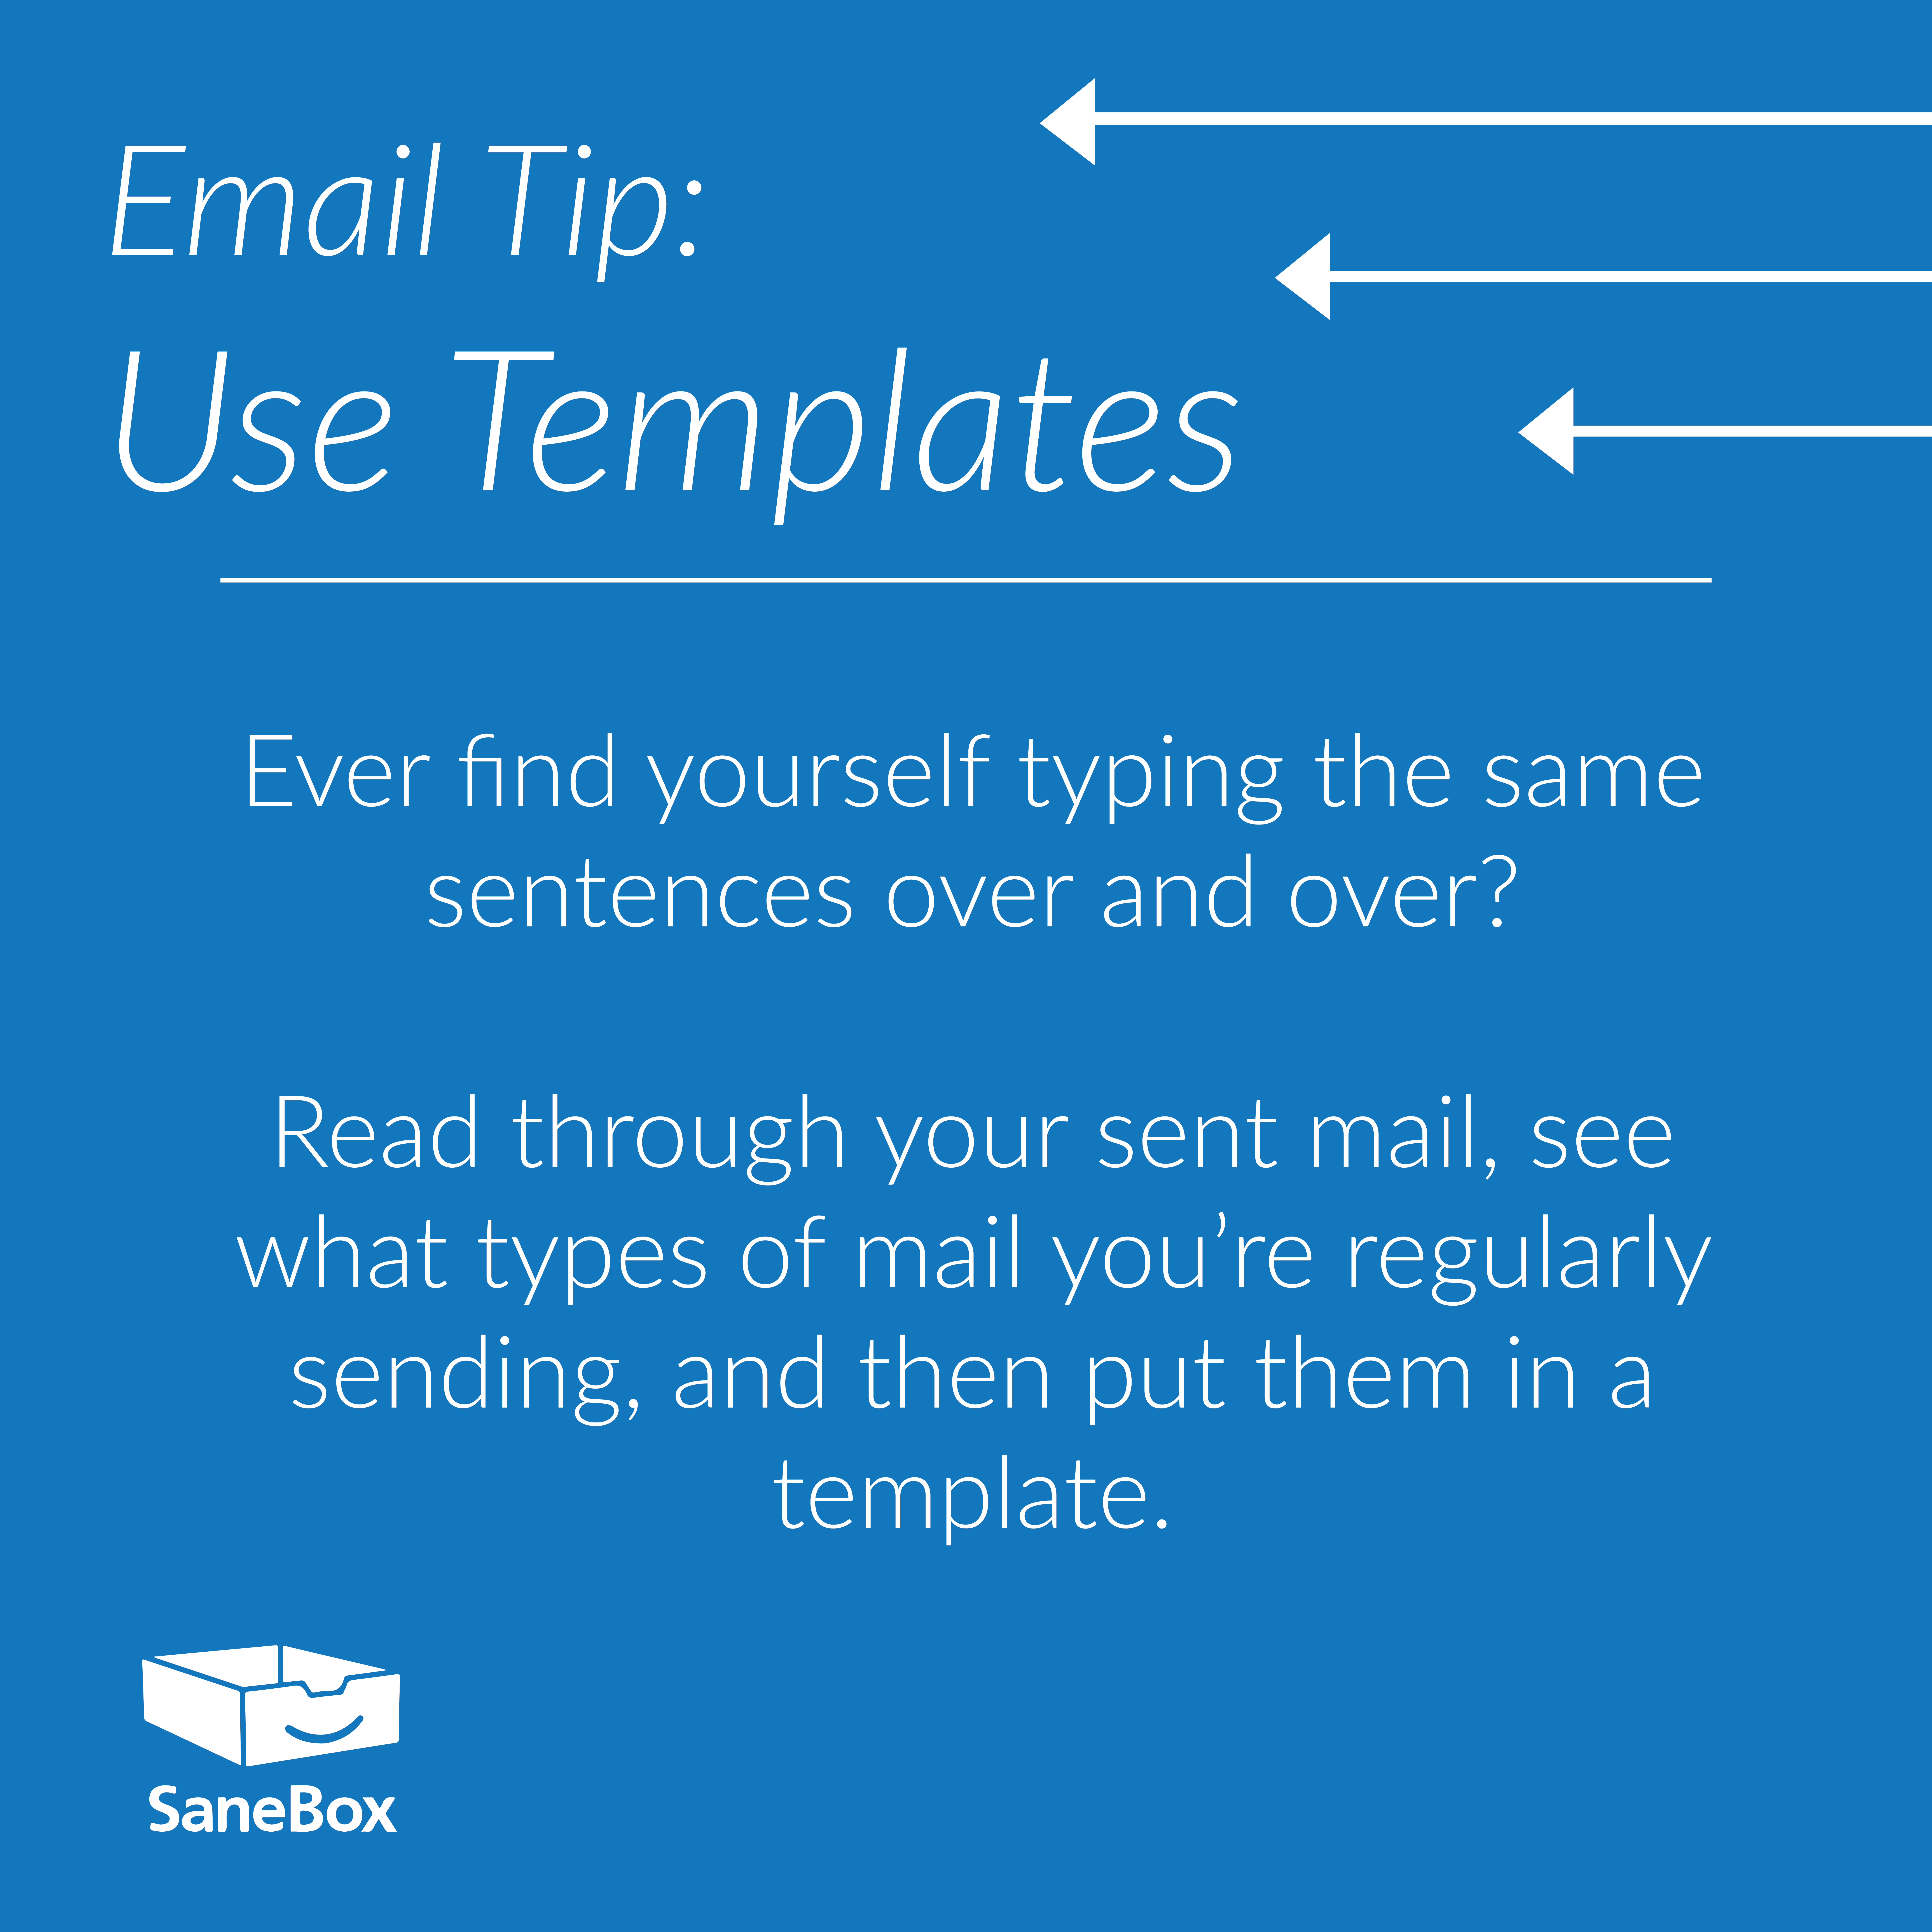 sanebox email tips template-01.png